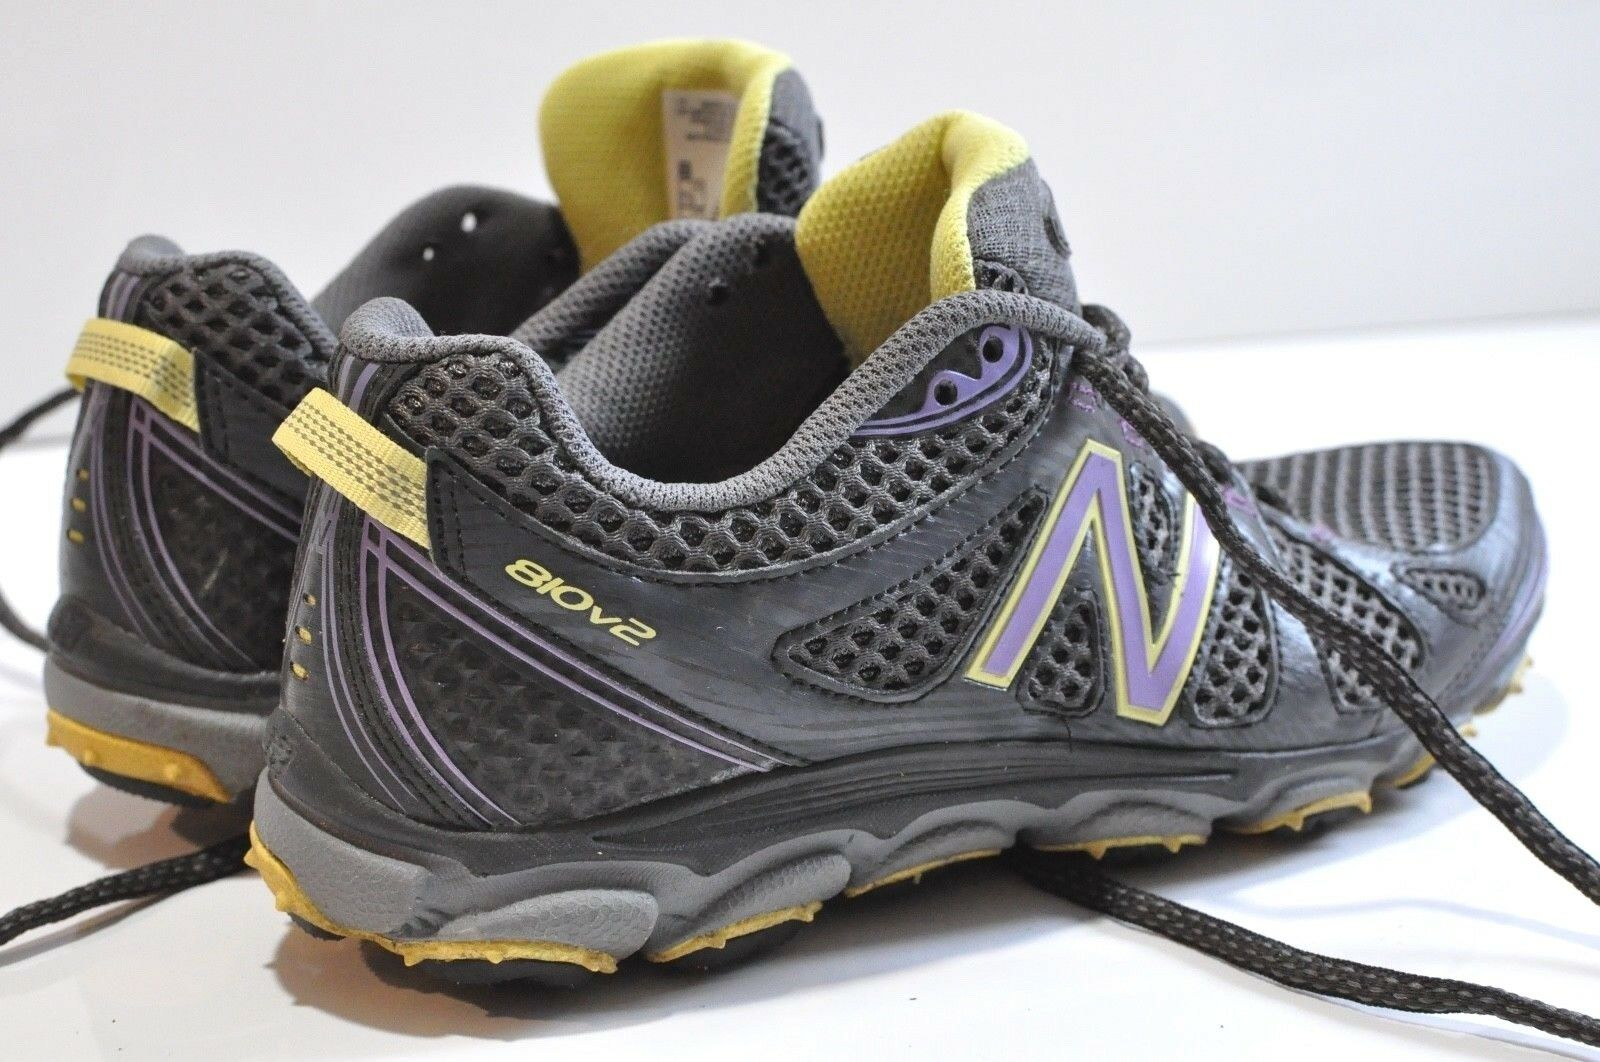 New Balance 810v2 Womens trail running shoes size 7.5 made in USA